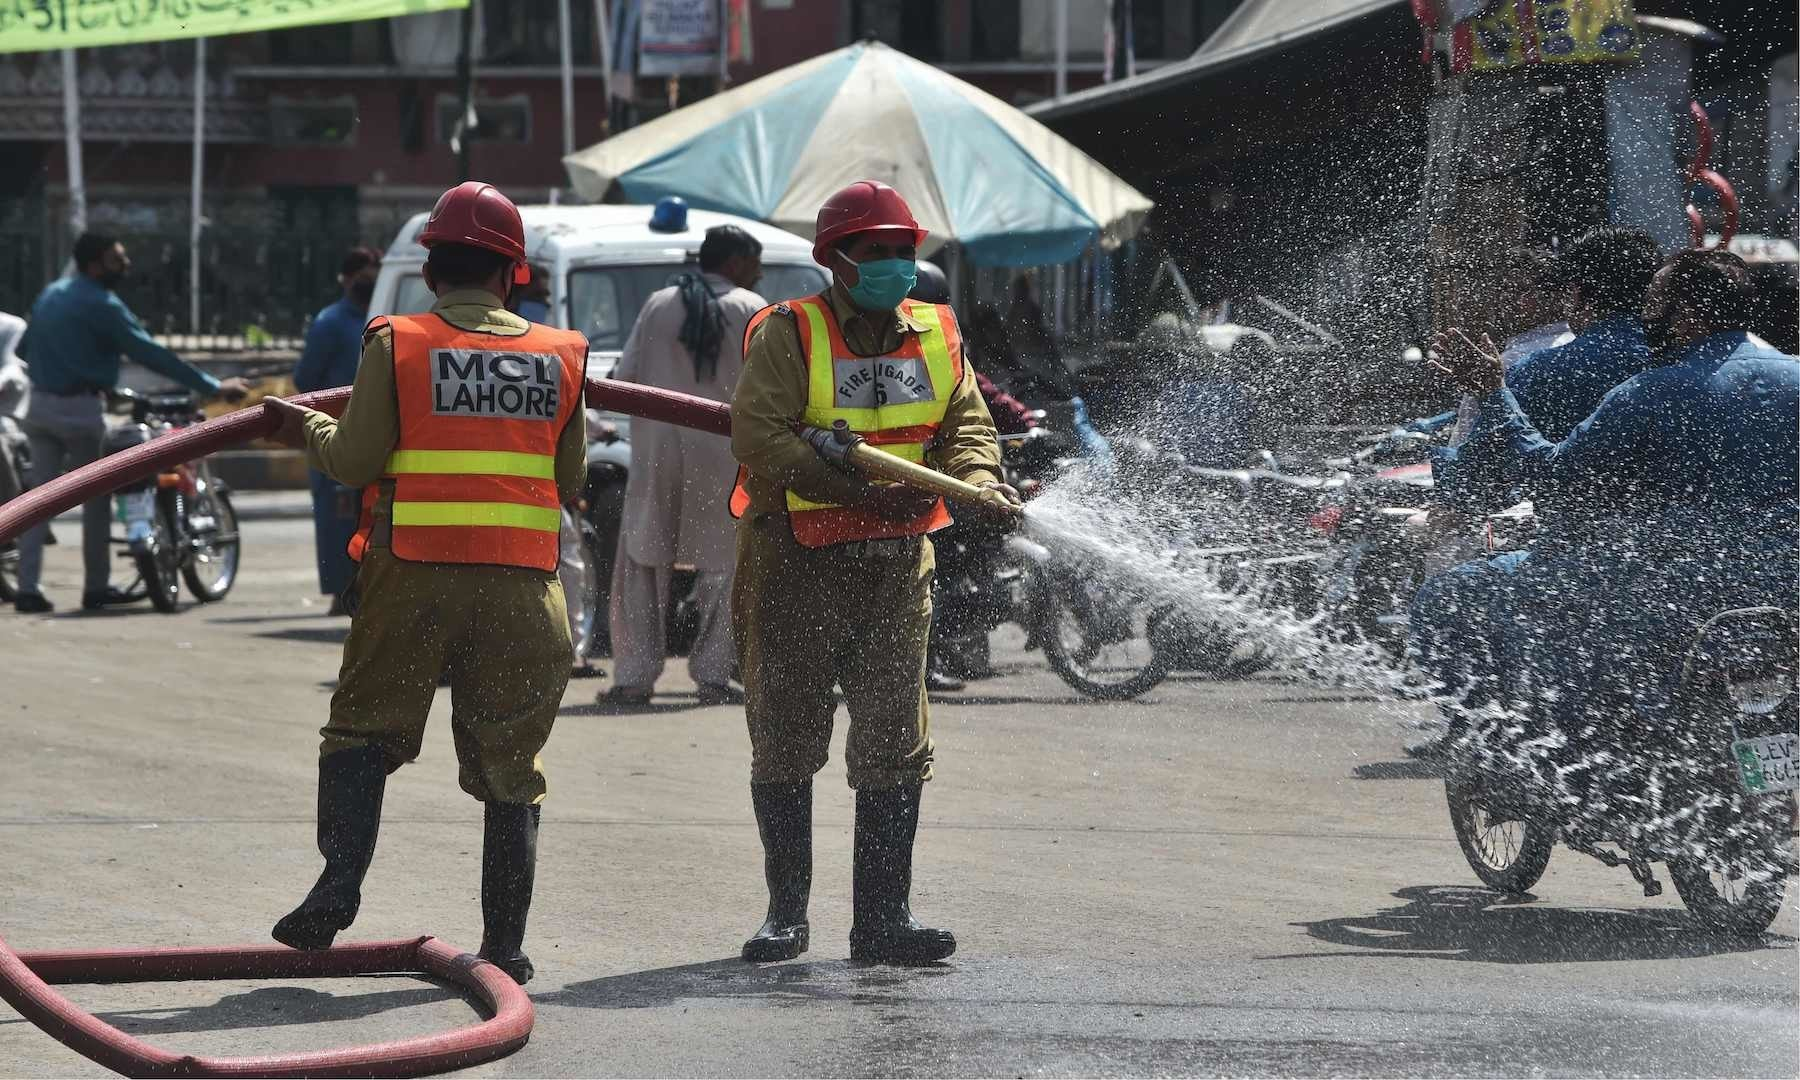 Municipals workers spray a solution to disinfect a street in a closed market area during a lockdown in Lahore's old city. — AFP